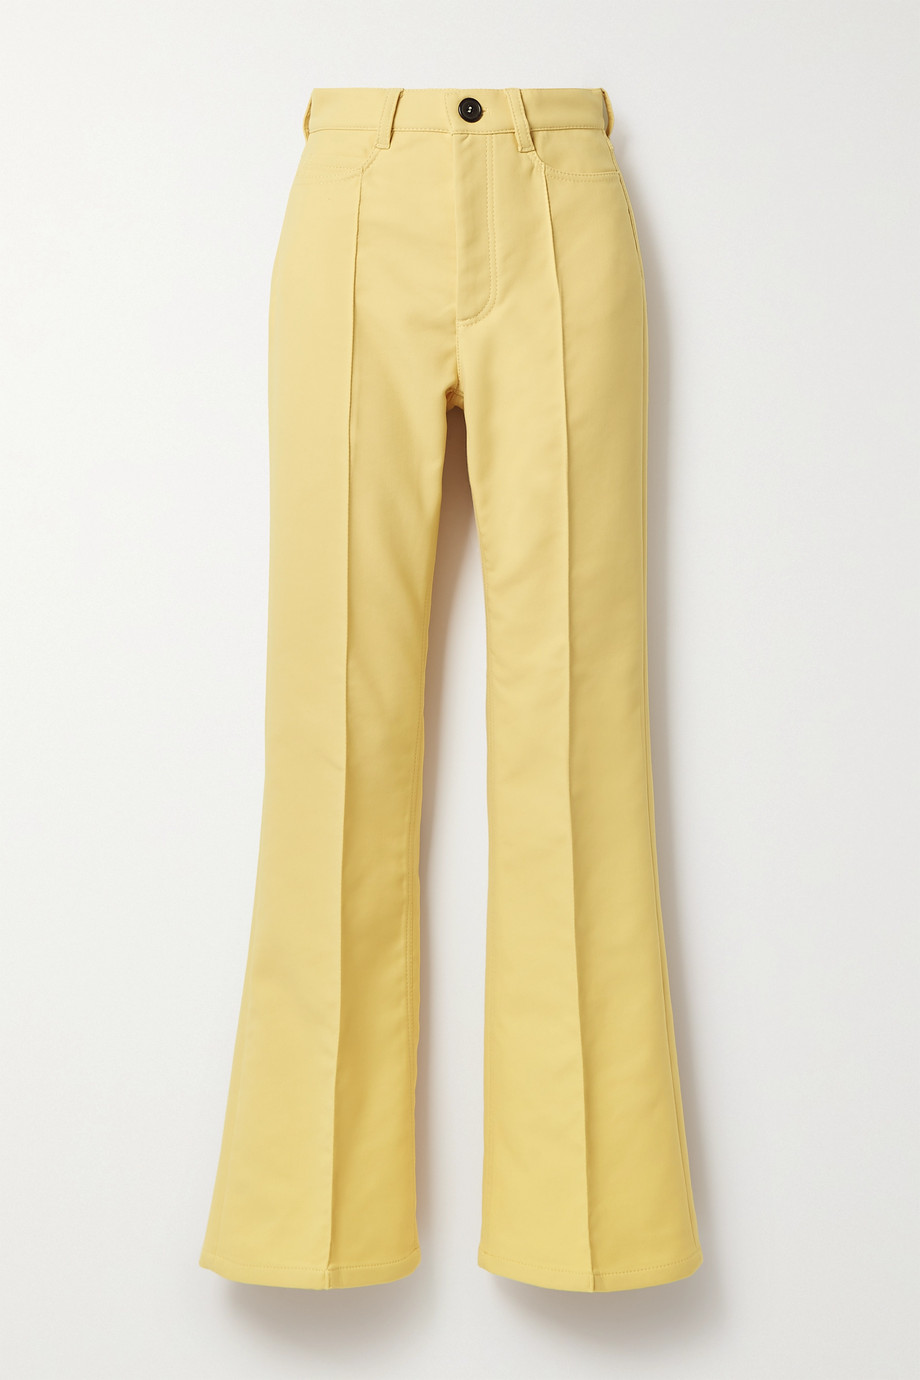 Twill flared pants by MERYLL ROGGE, available on net-a-porter.com for $470.86 Kendall Jenner Pants Exact Product